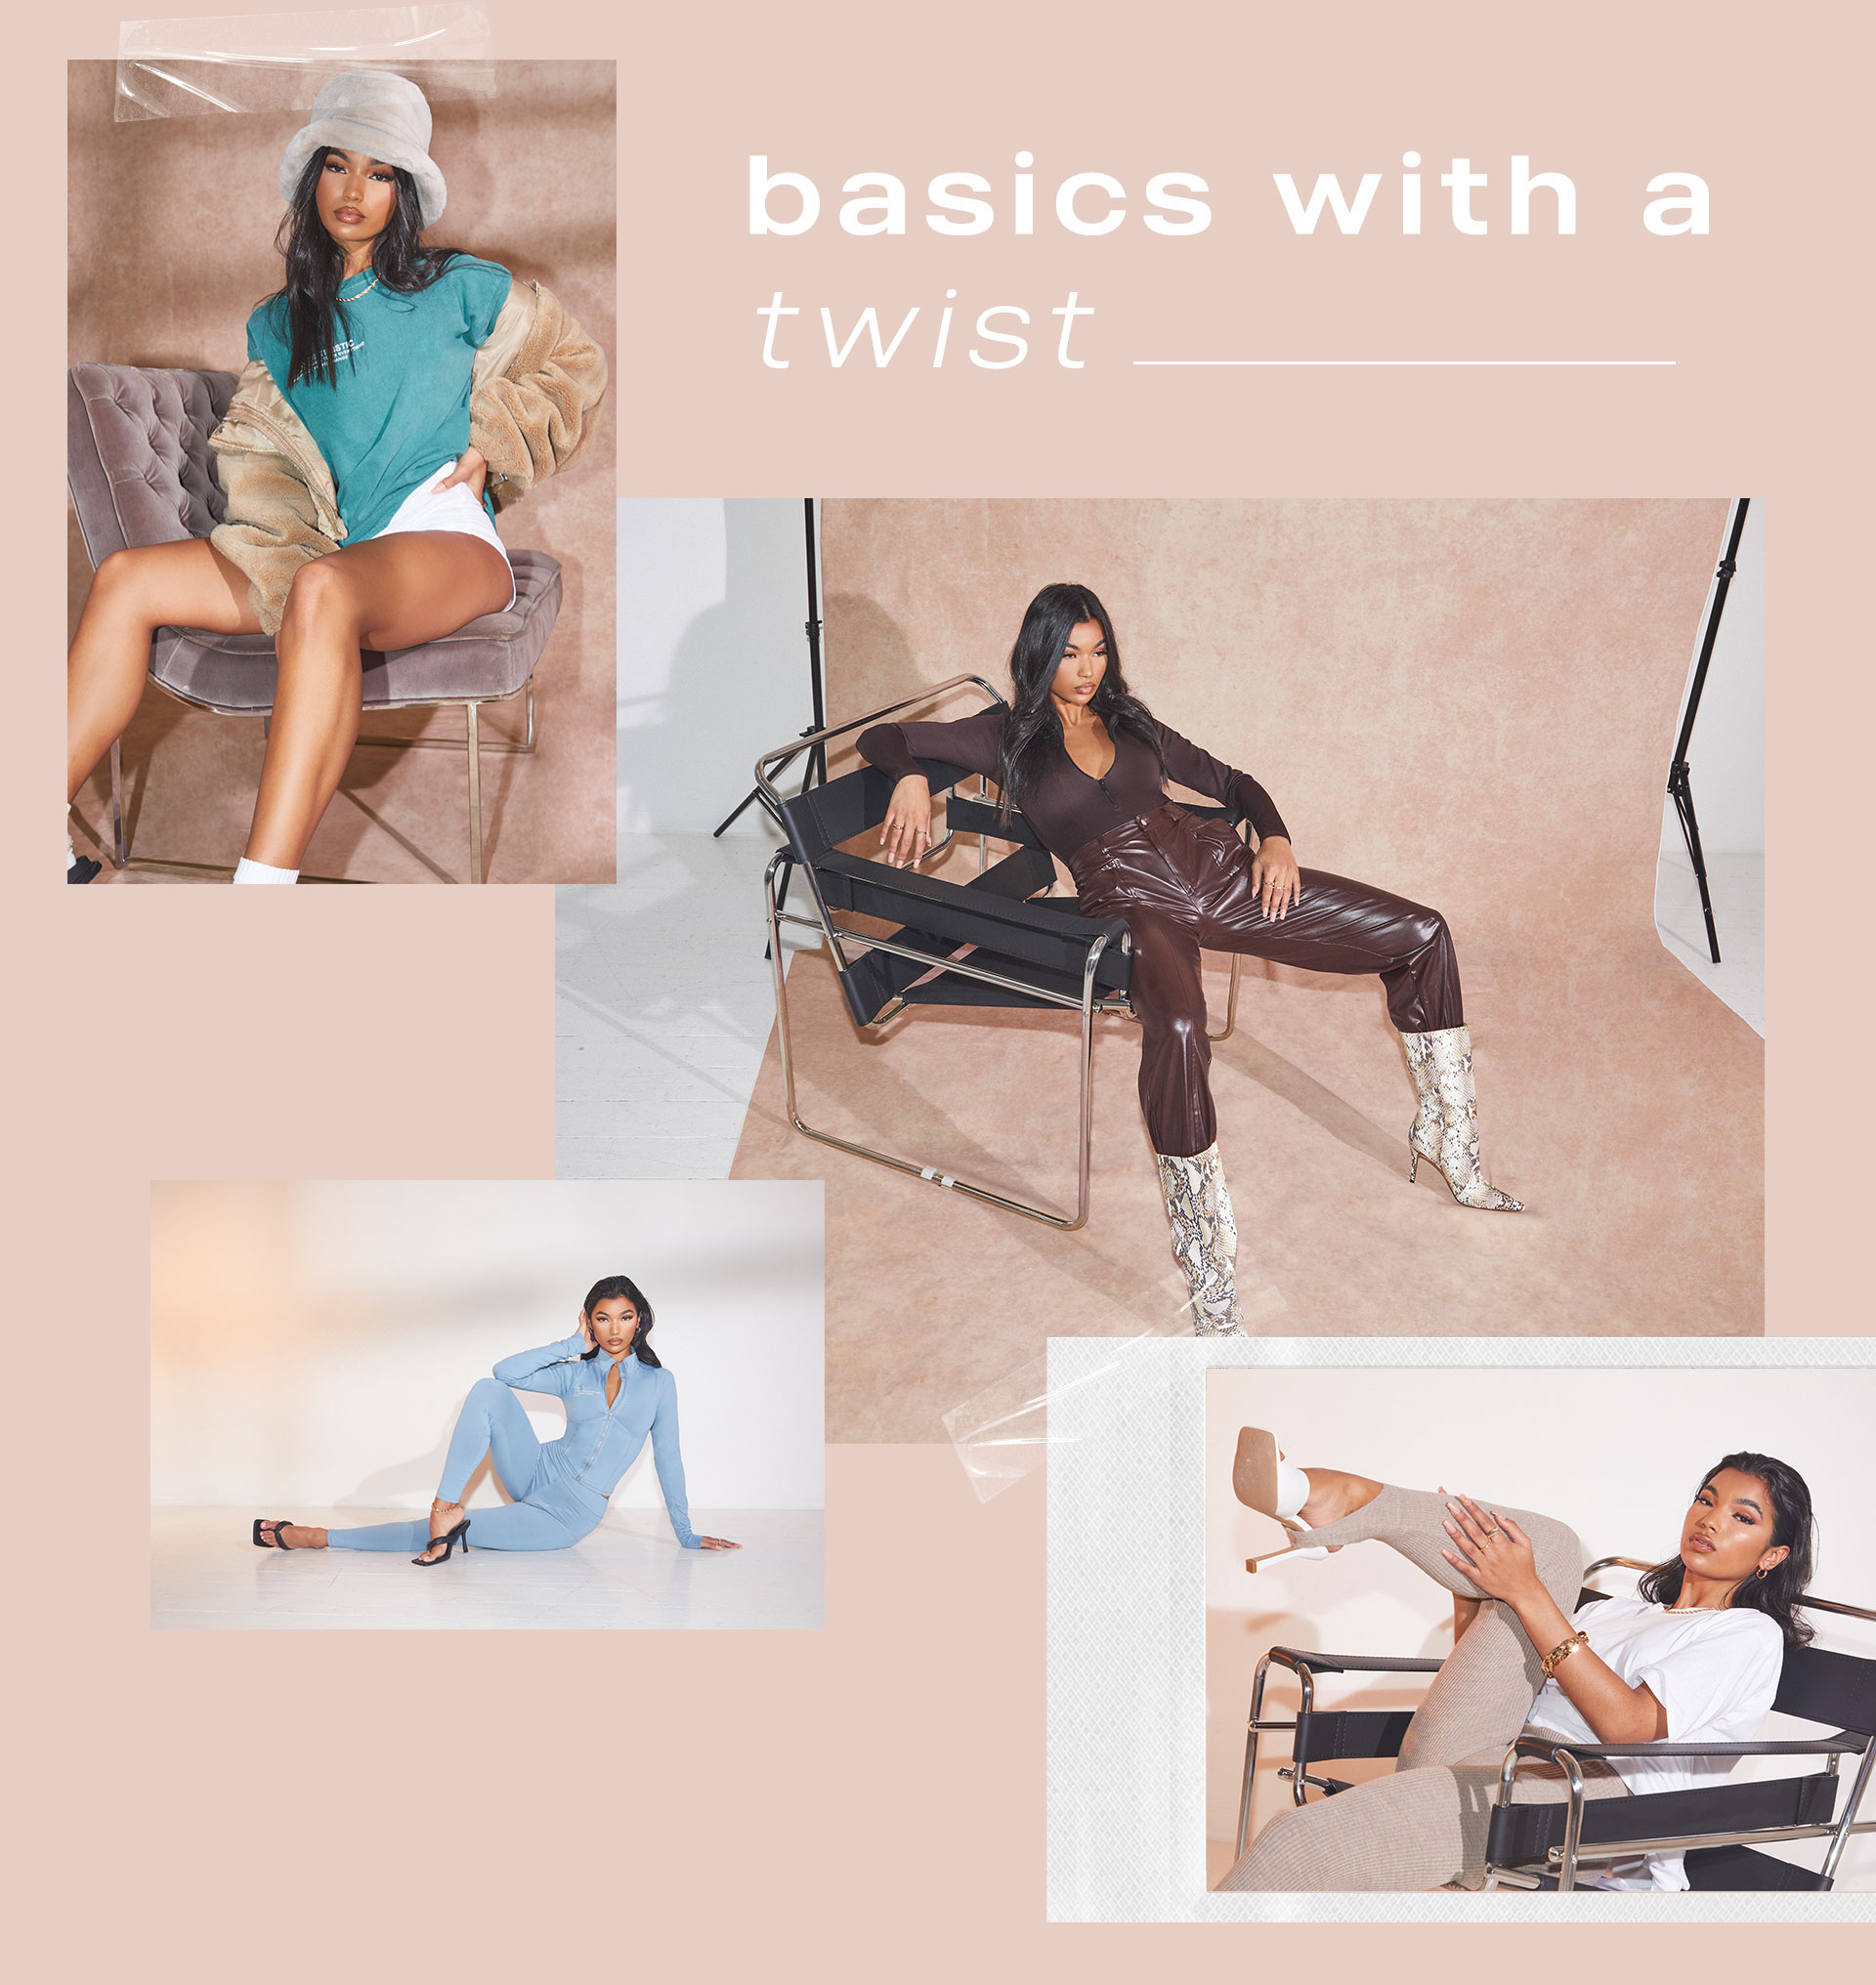 Basics with a twist